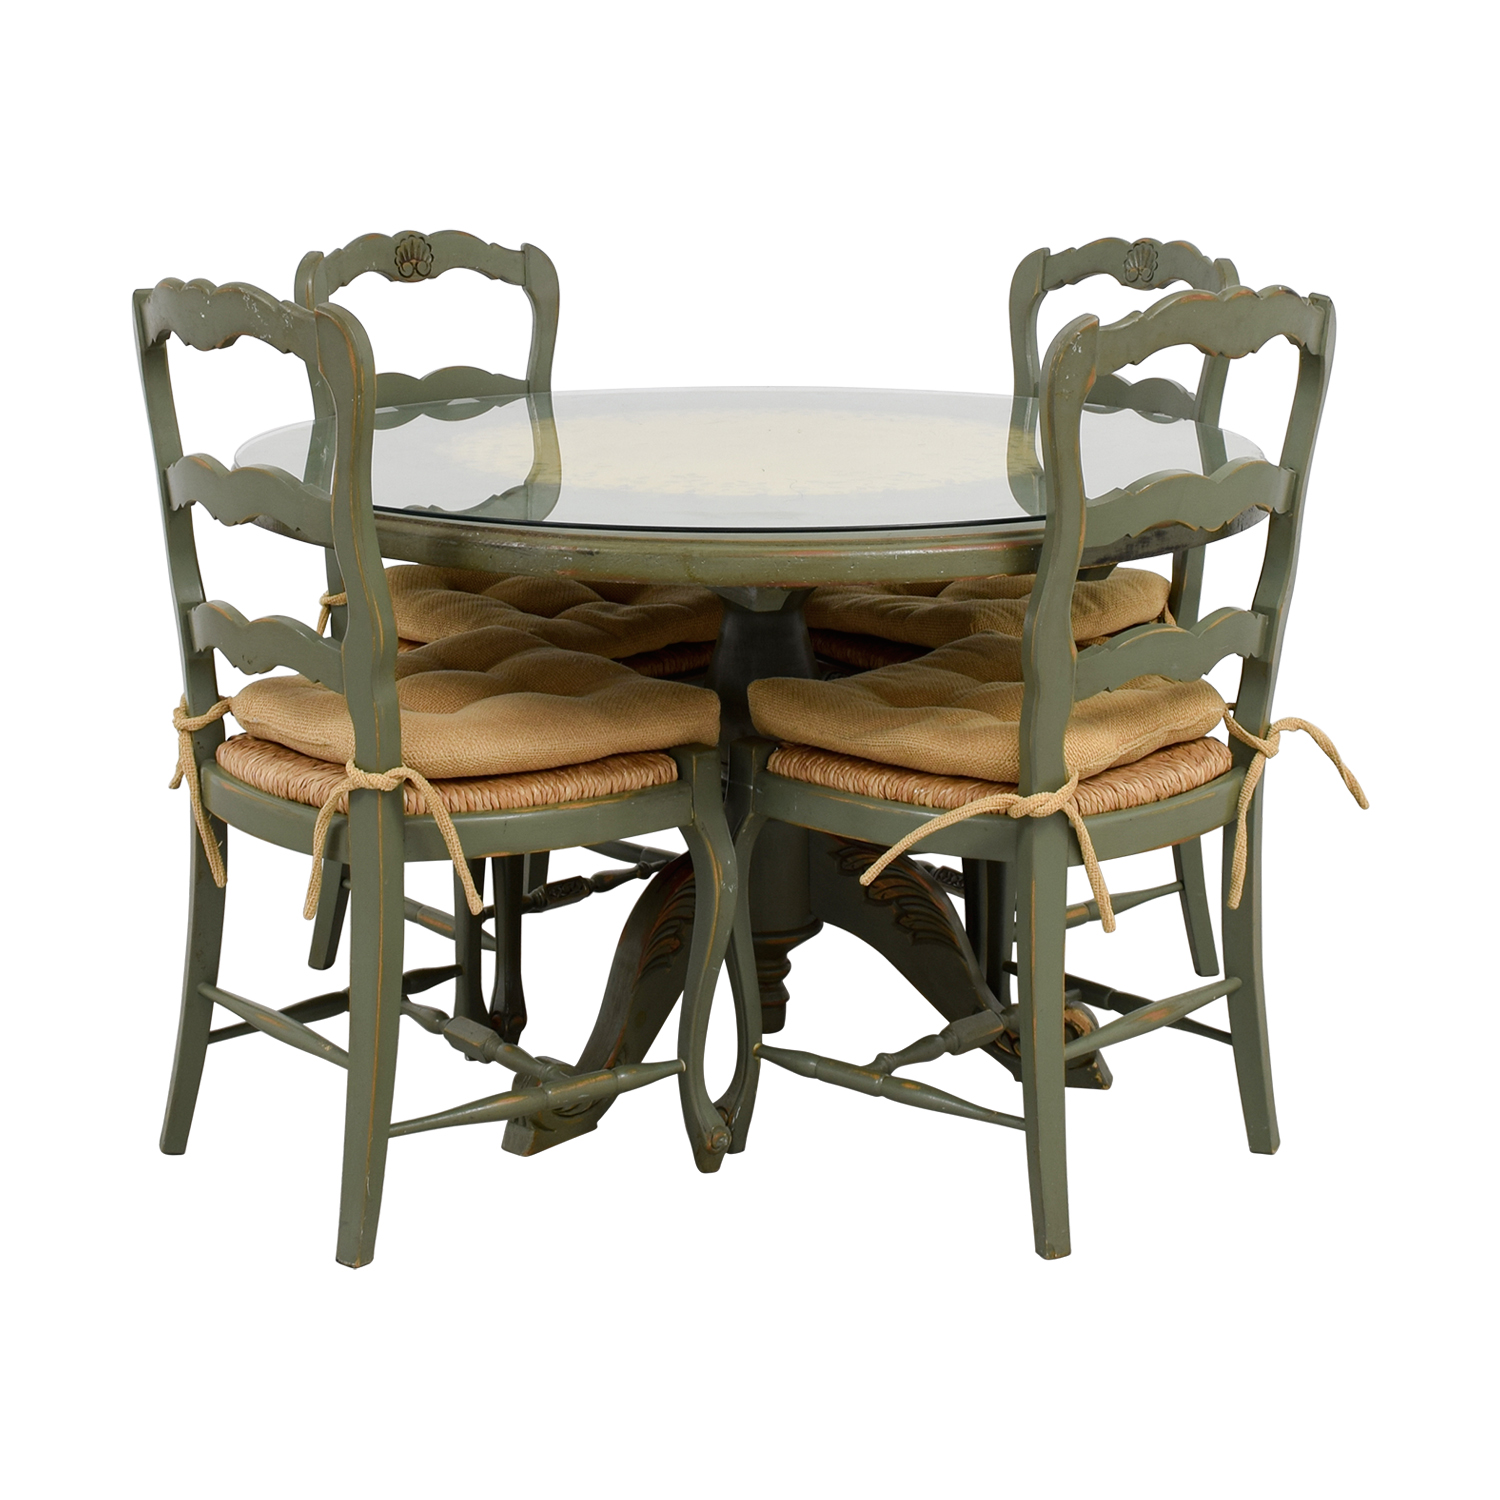 Country Kitchen Chairs 88 Off Hand Painted Country Style Kitchen Table And